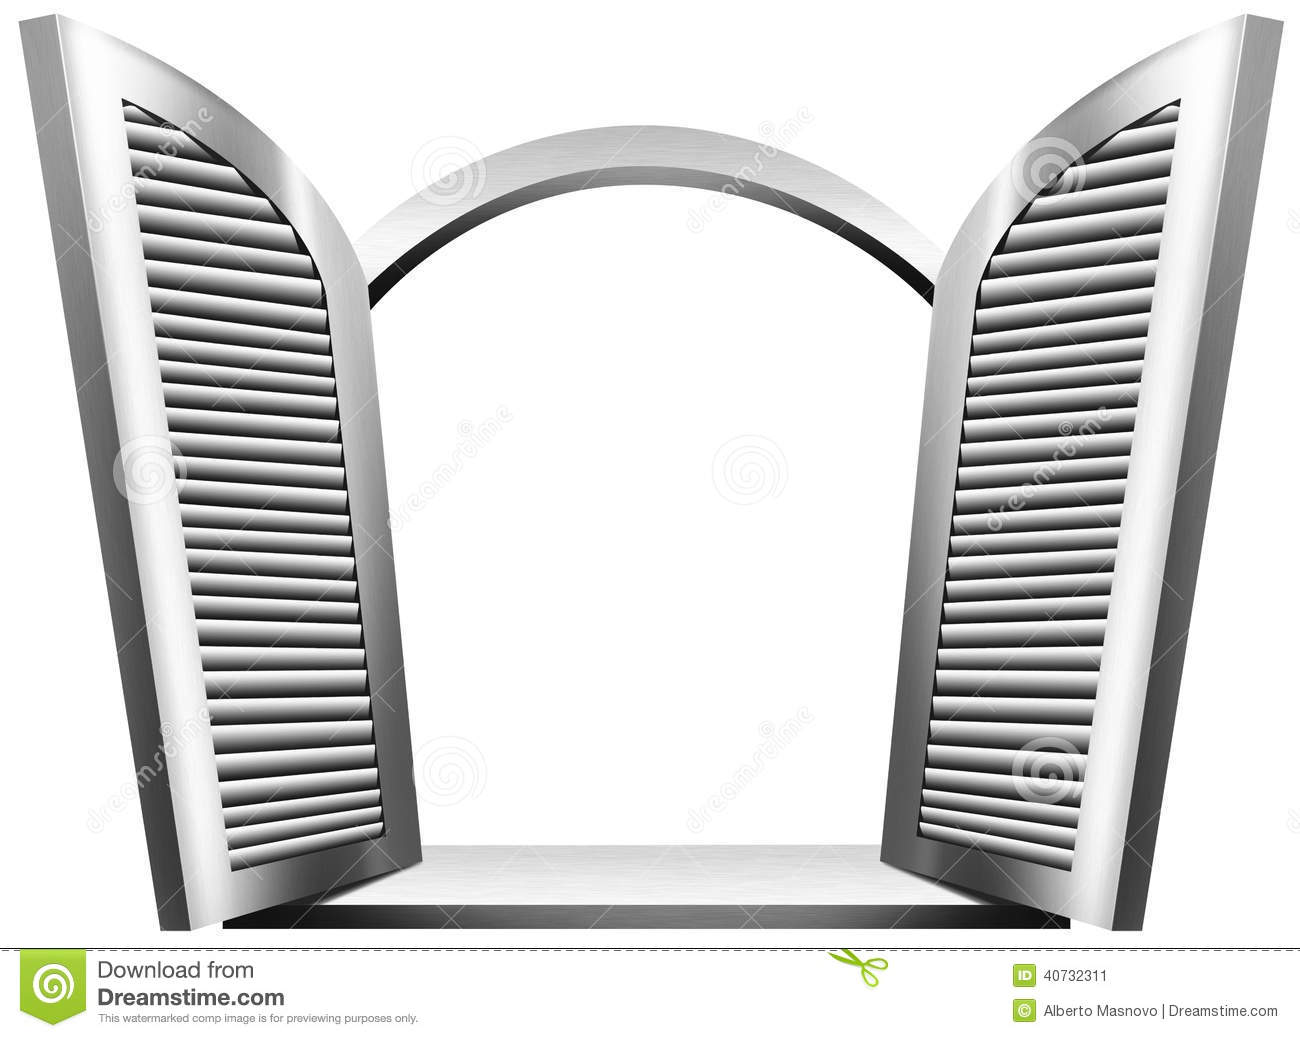 clipart house shutters - photo #7